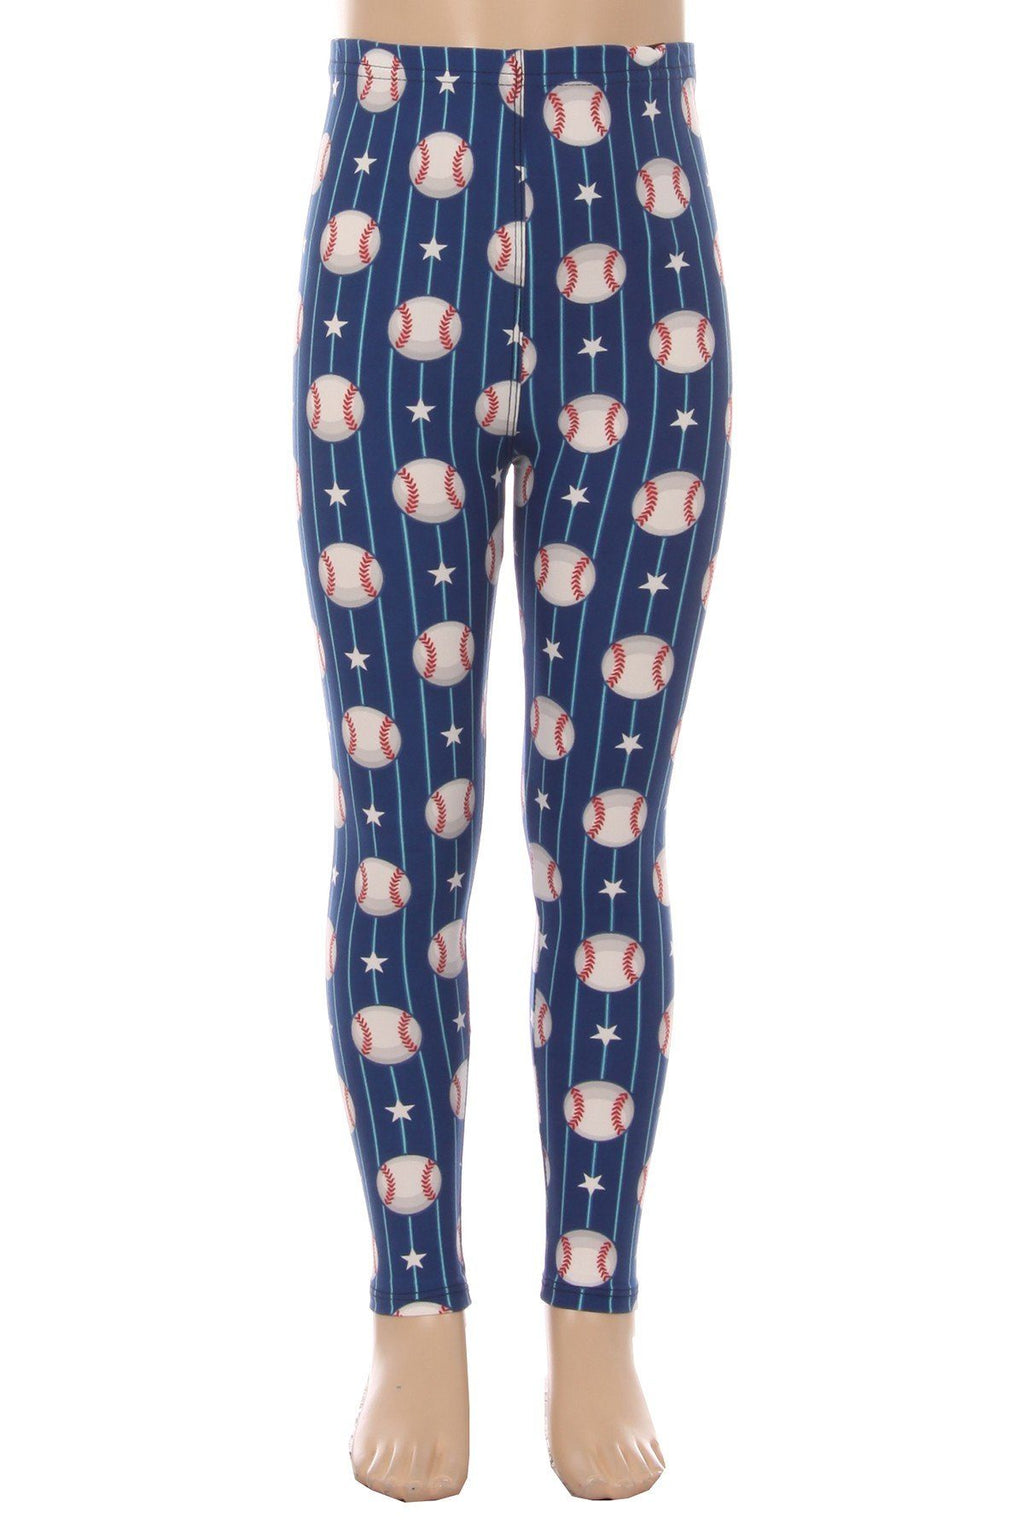 Girl's Baseball Printed Soft Leggings Blue: S and L - MomMe and More Matching Mommy and Me Clothing